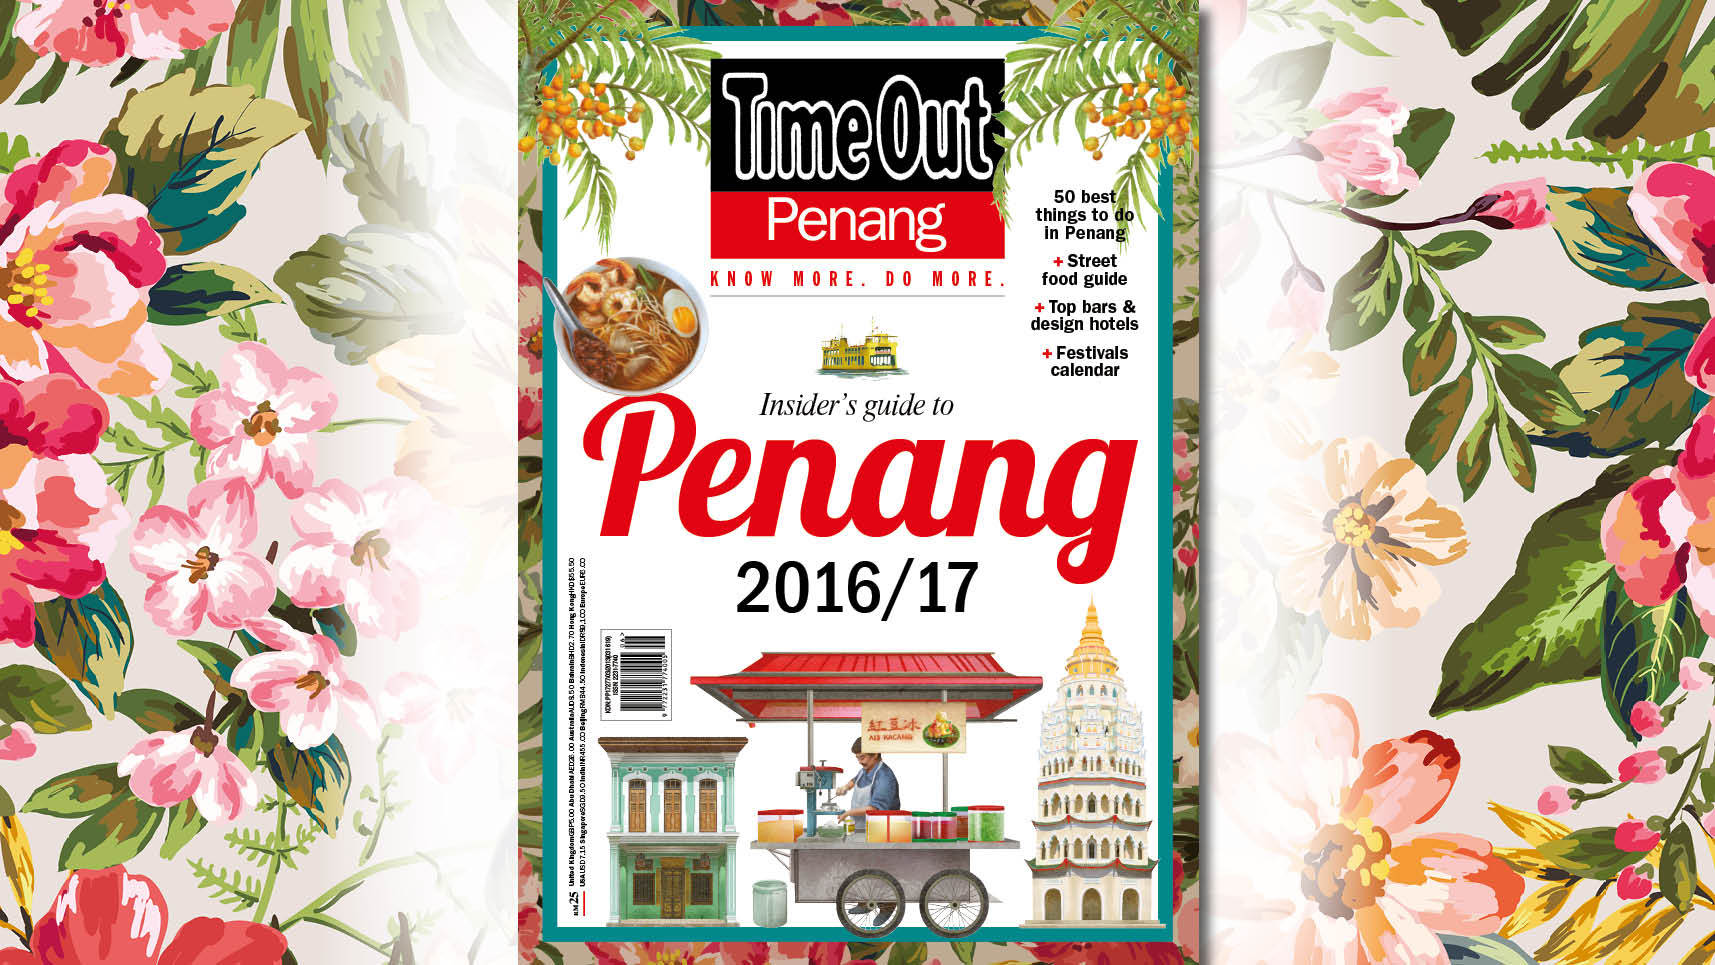 Out now: Time Out Penang Guide for 2016/2017